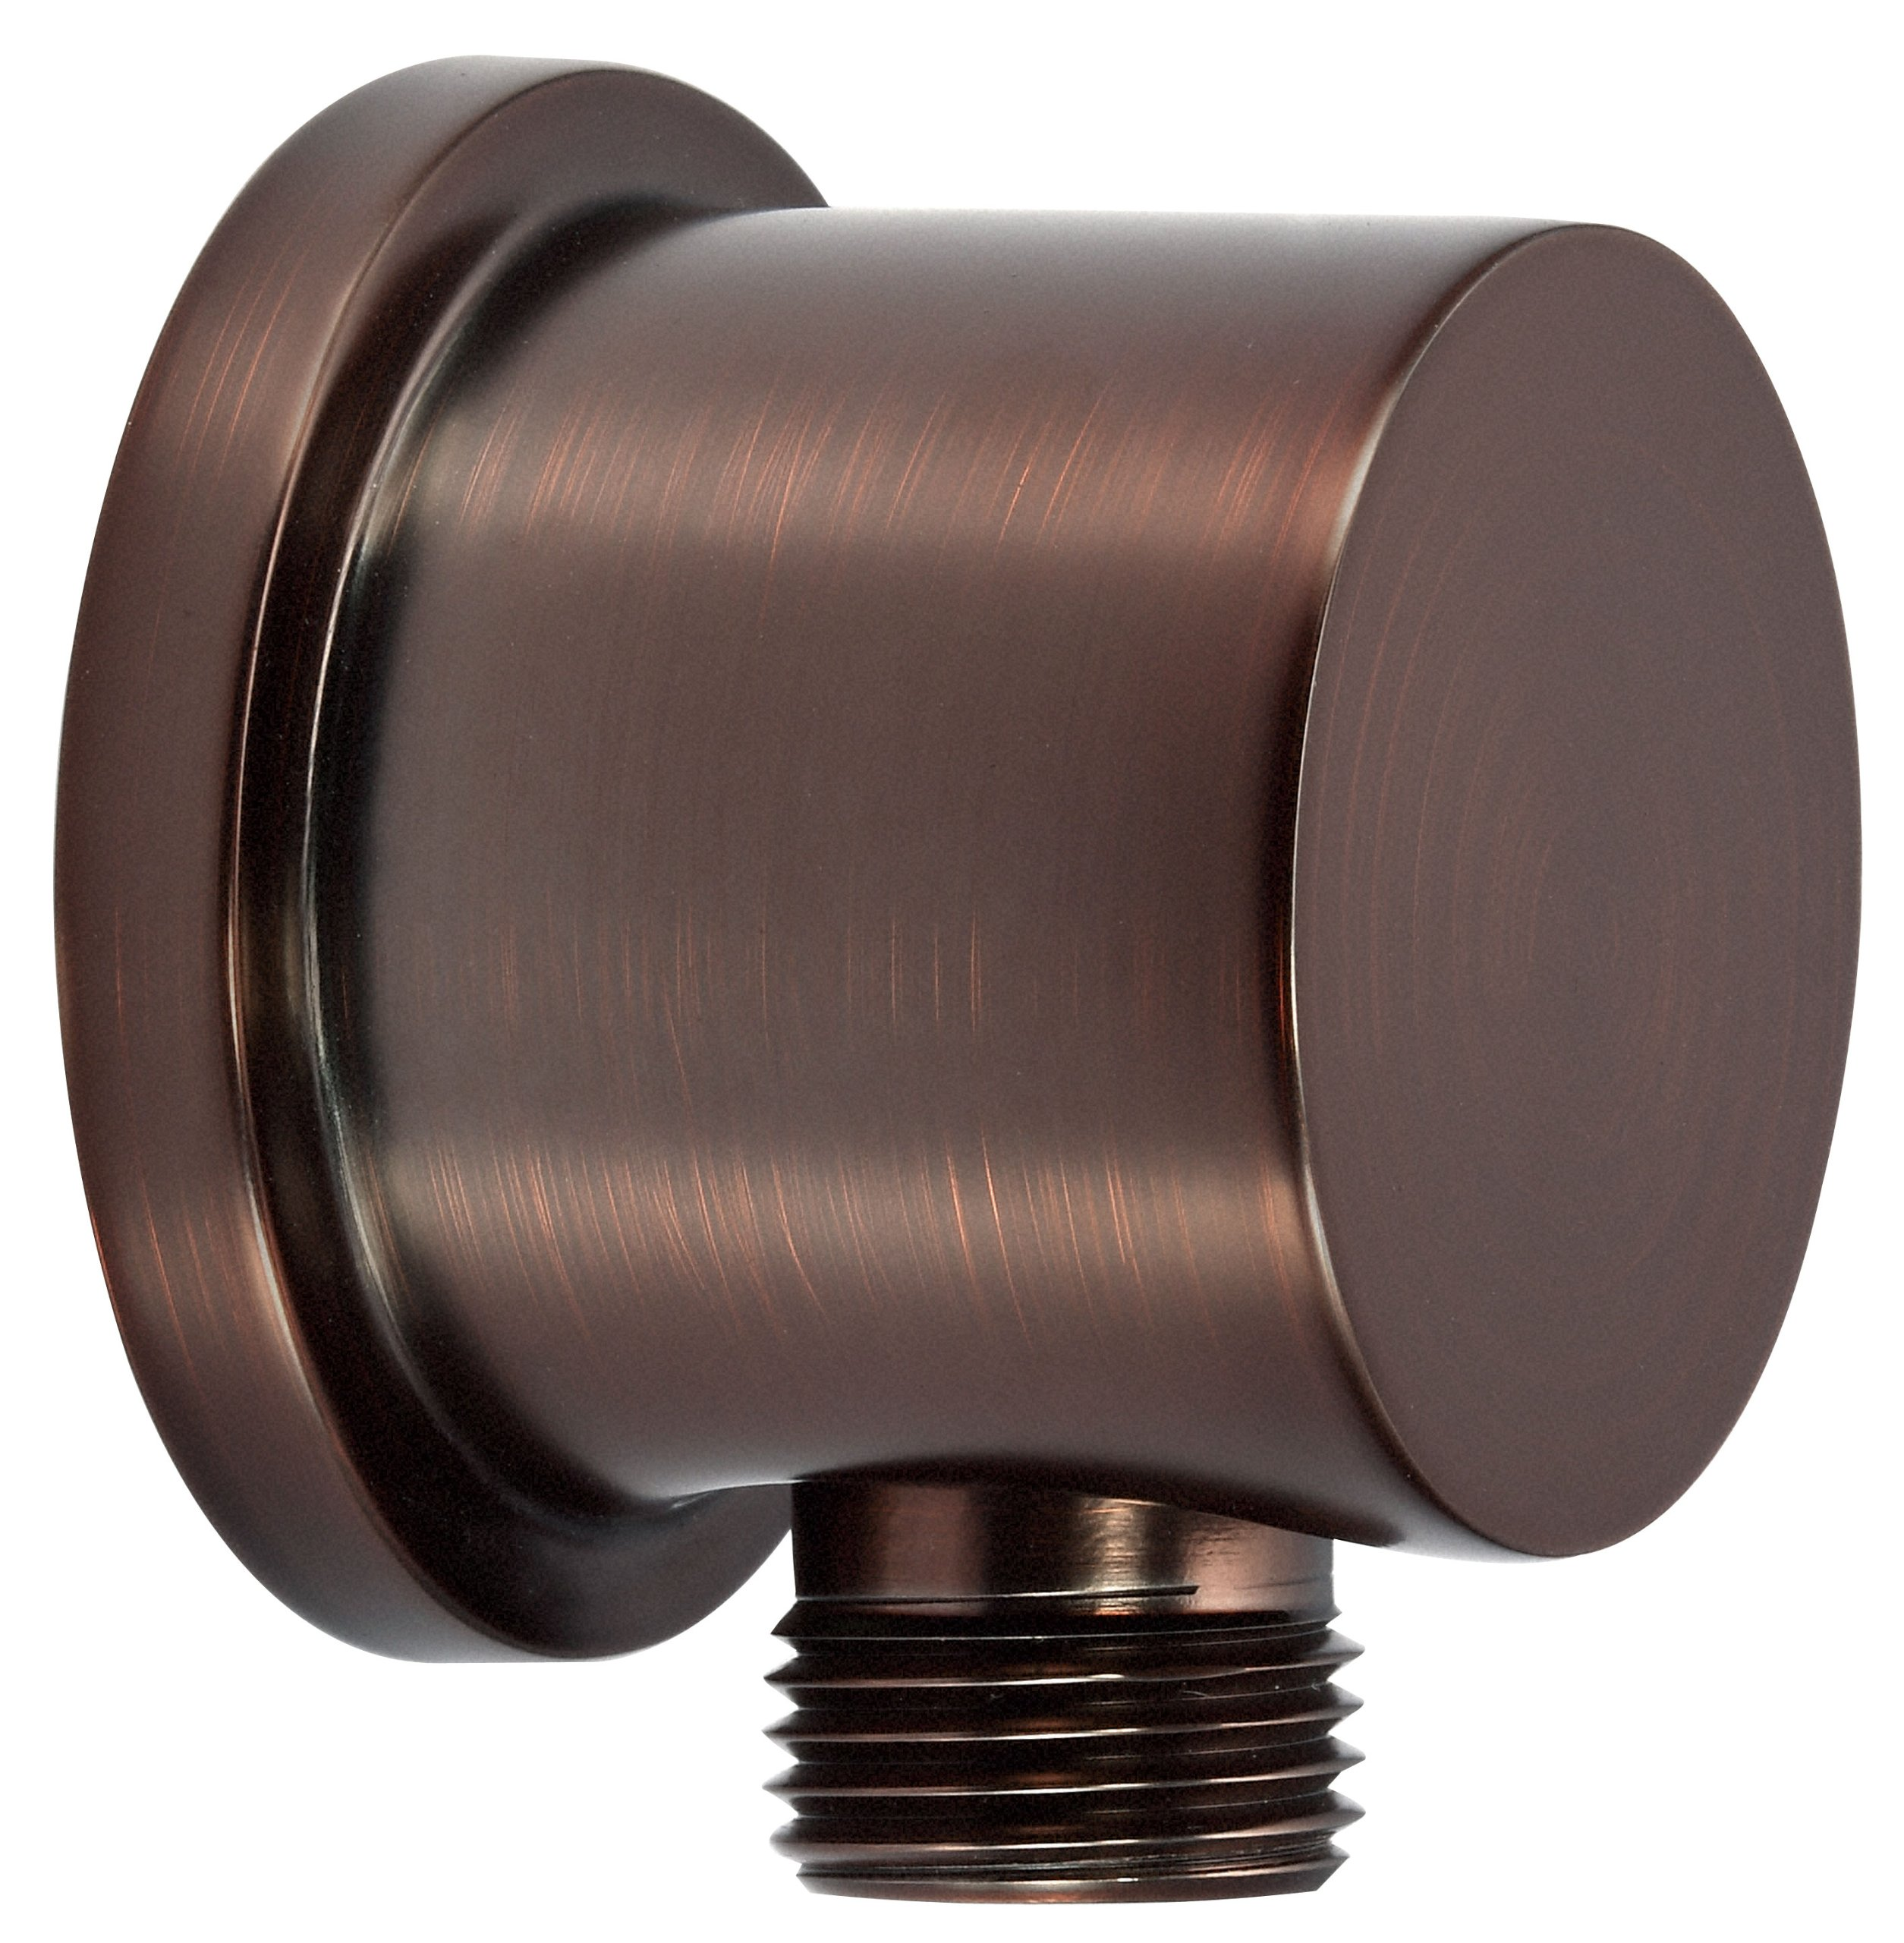 Danze D469058RB Supply Elbow, Oil Rubbed Bronze by Danze